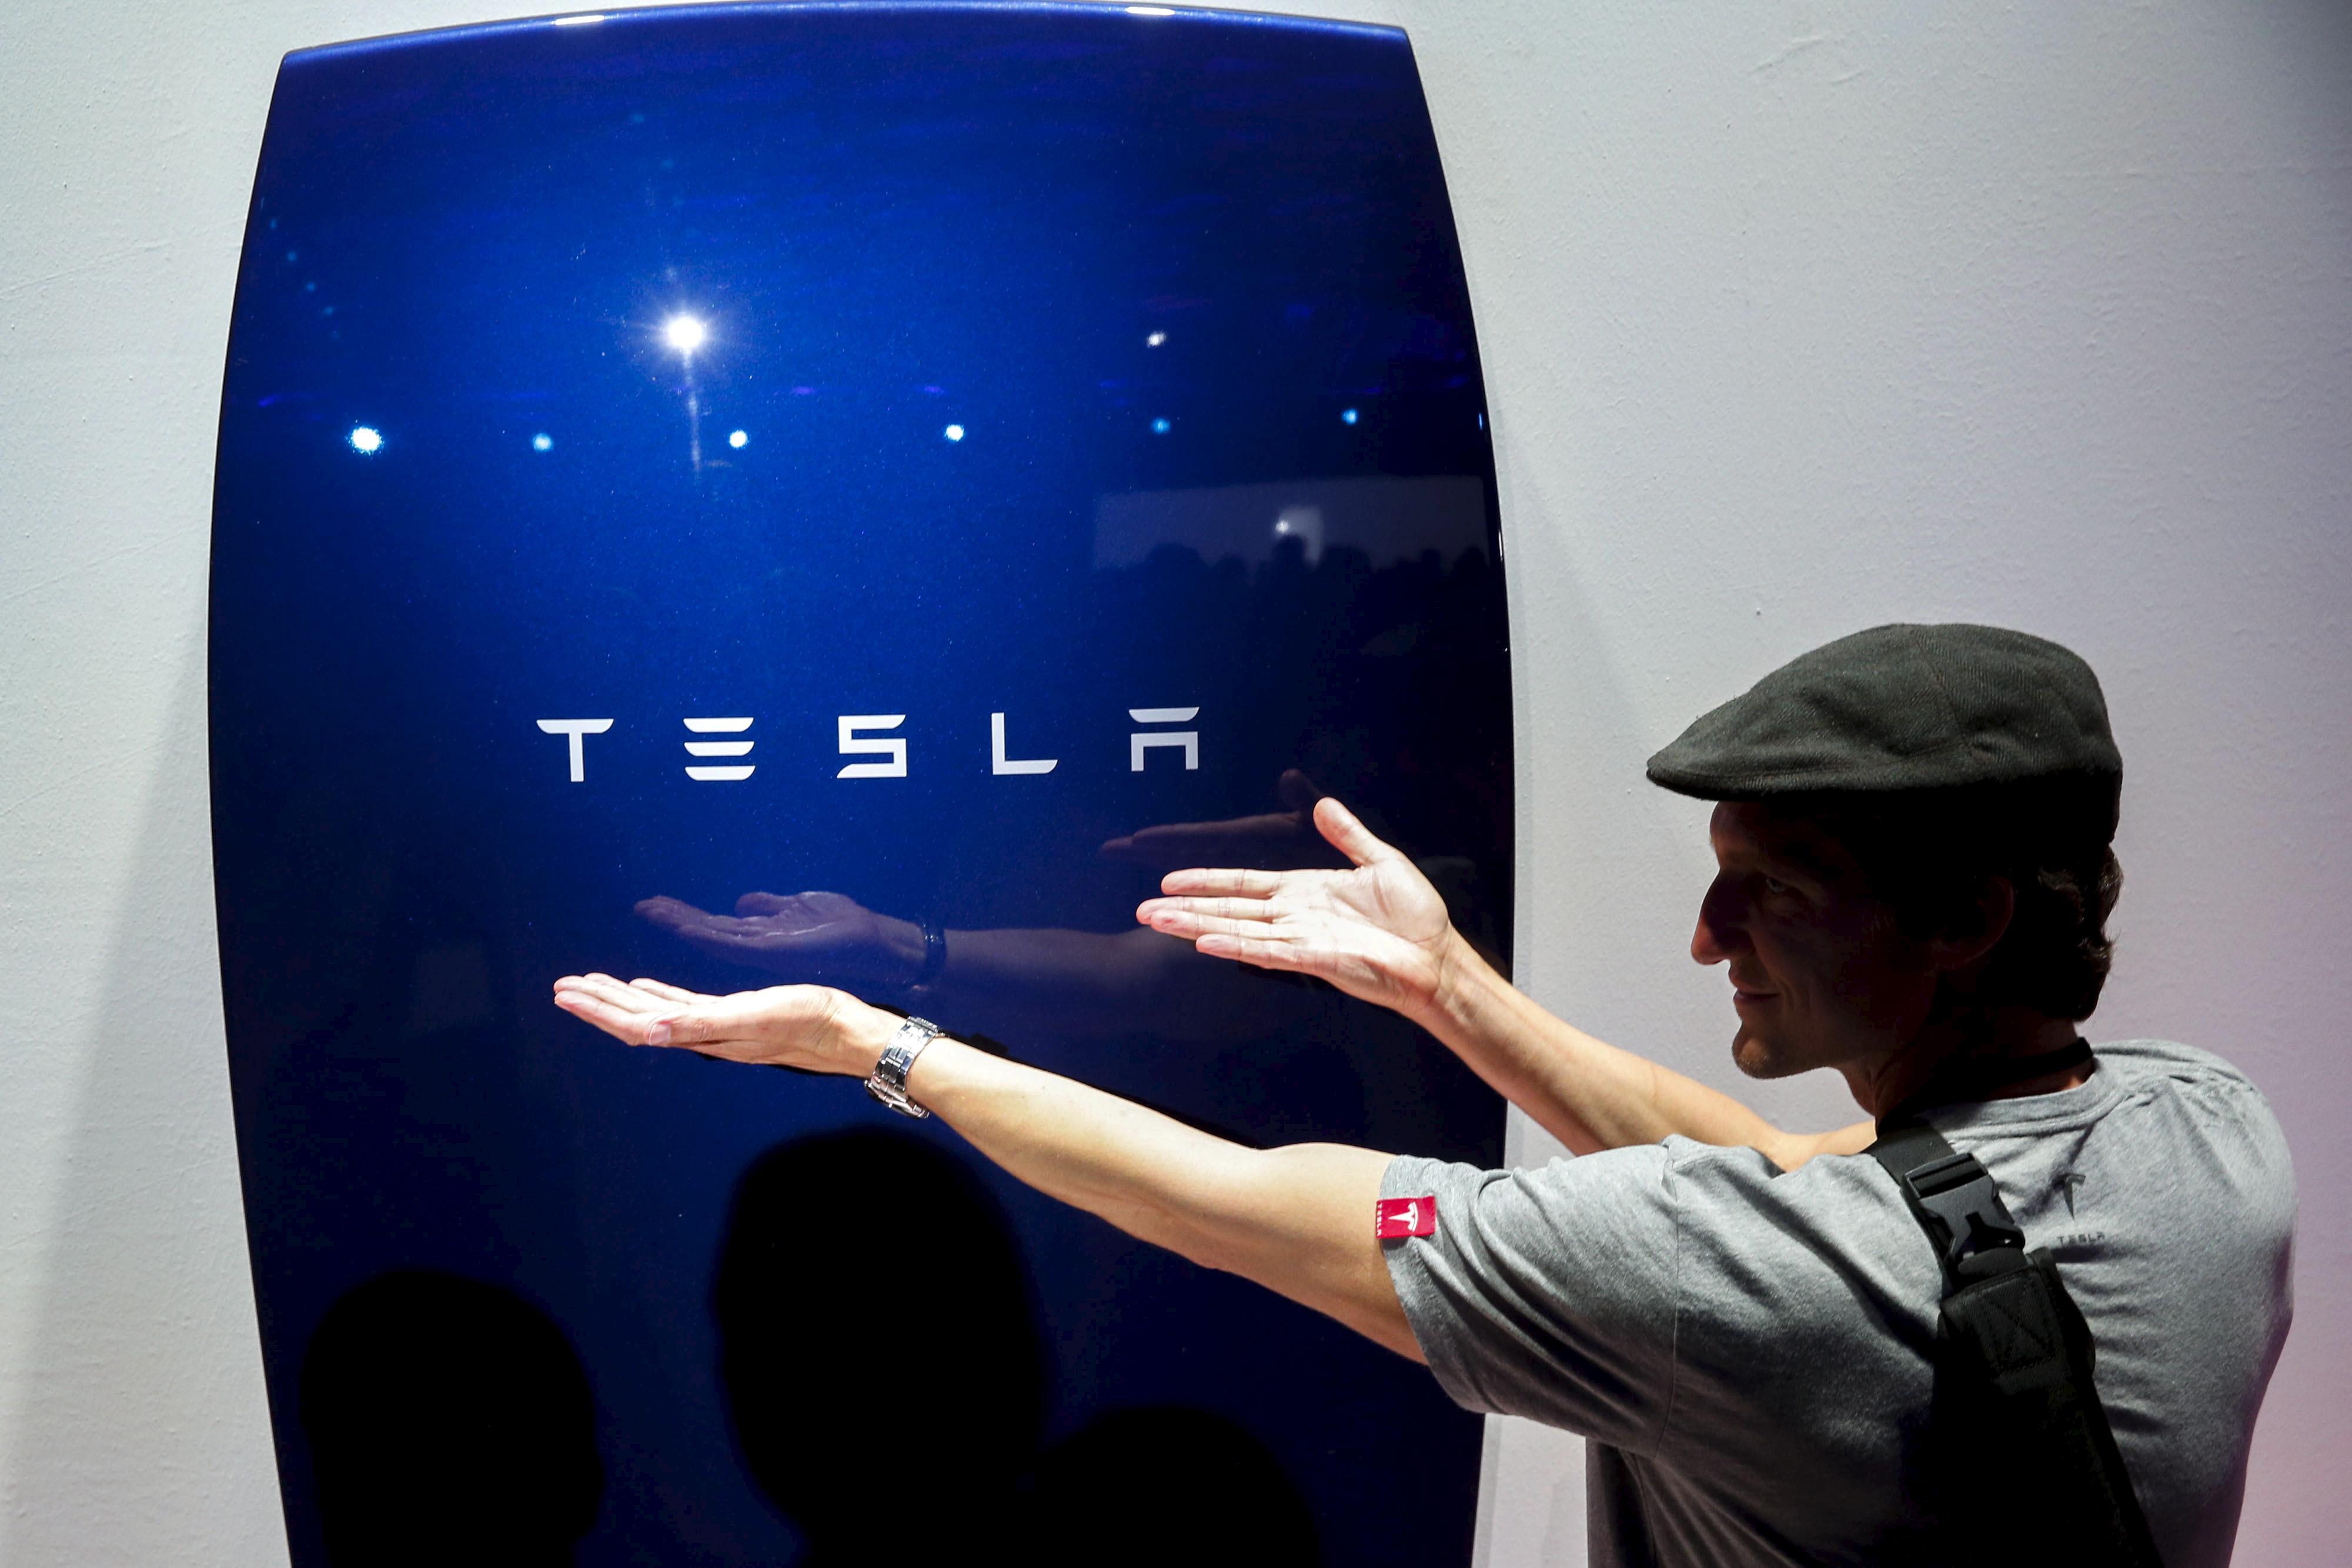 Tesla's CTO envisions a future in which low cost batteries change everything